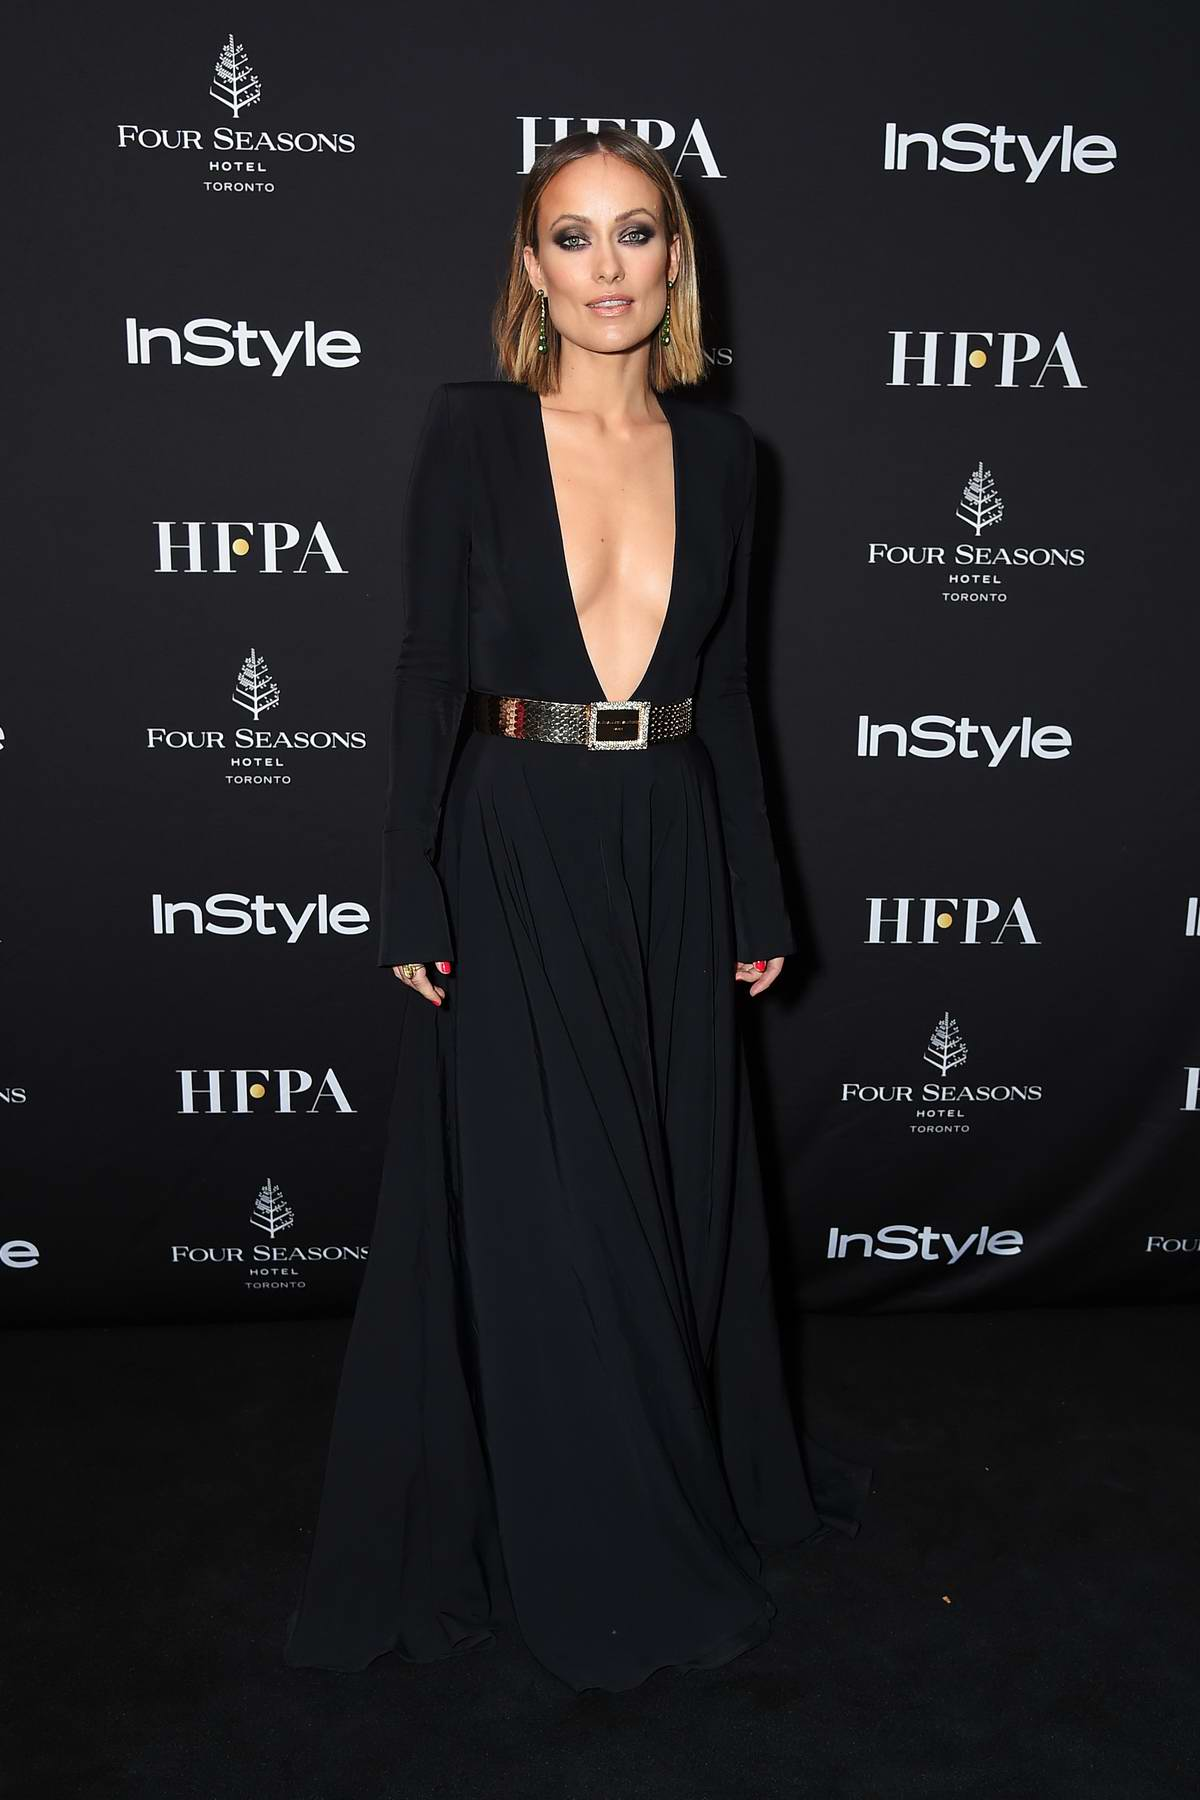 Olivia Wilde attends HFPA and InStyle Party during the Toronto International Film Festival (TIFF 2018) in Toronto, Canada